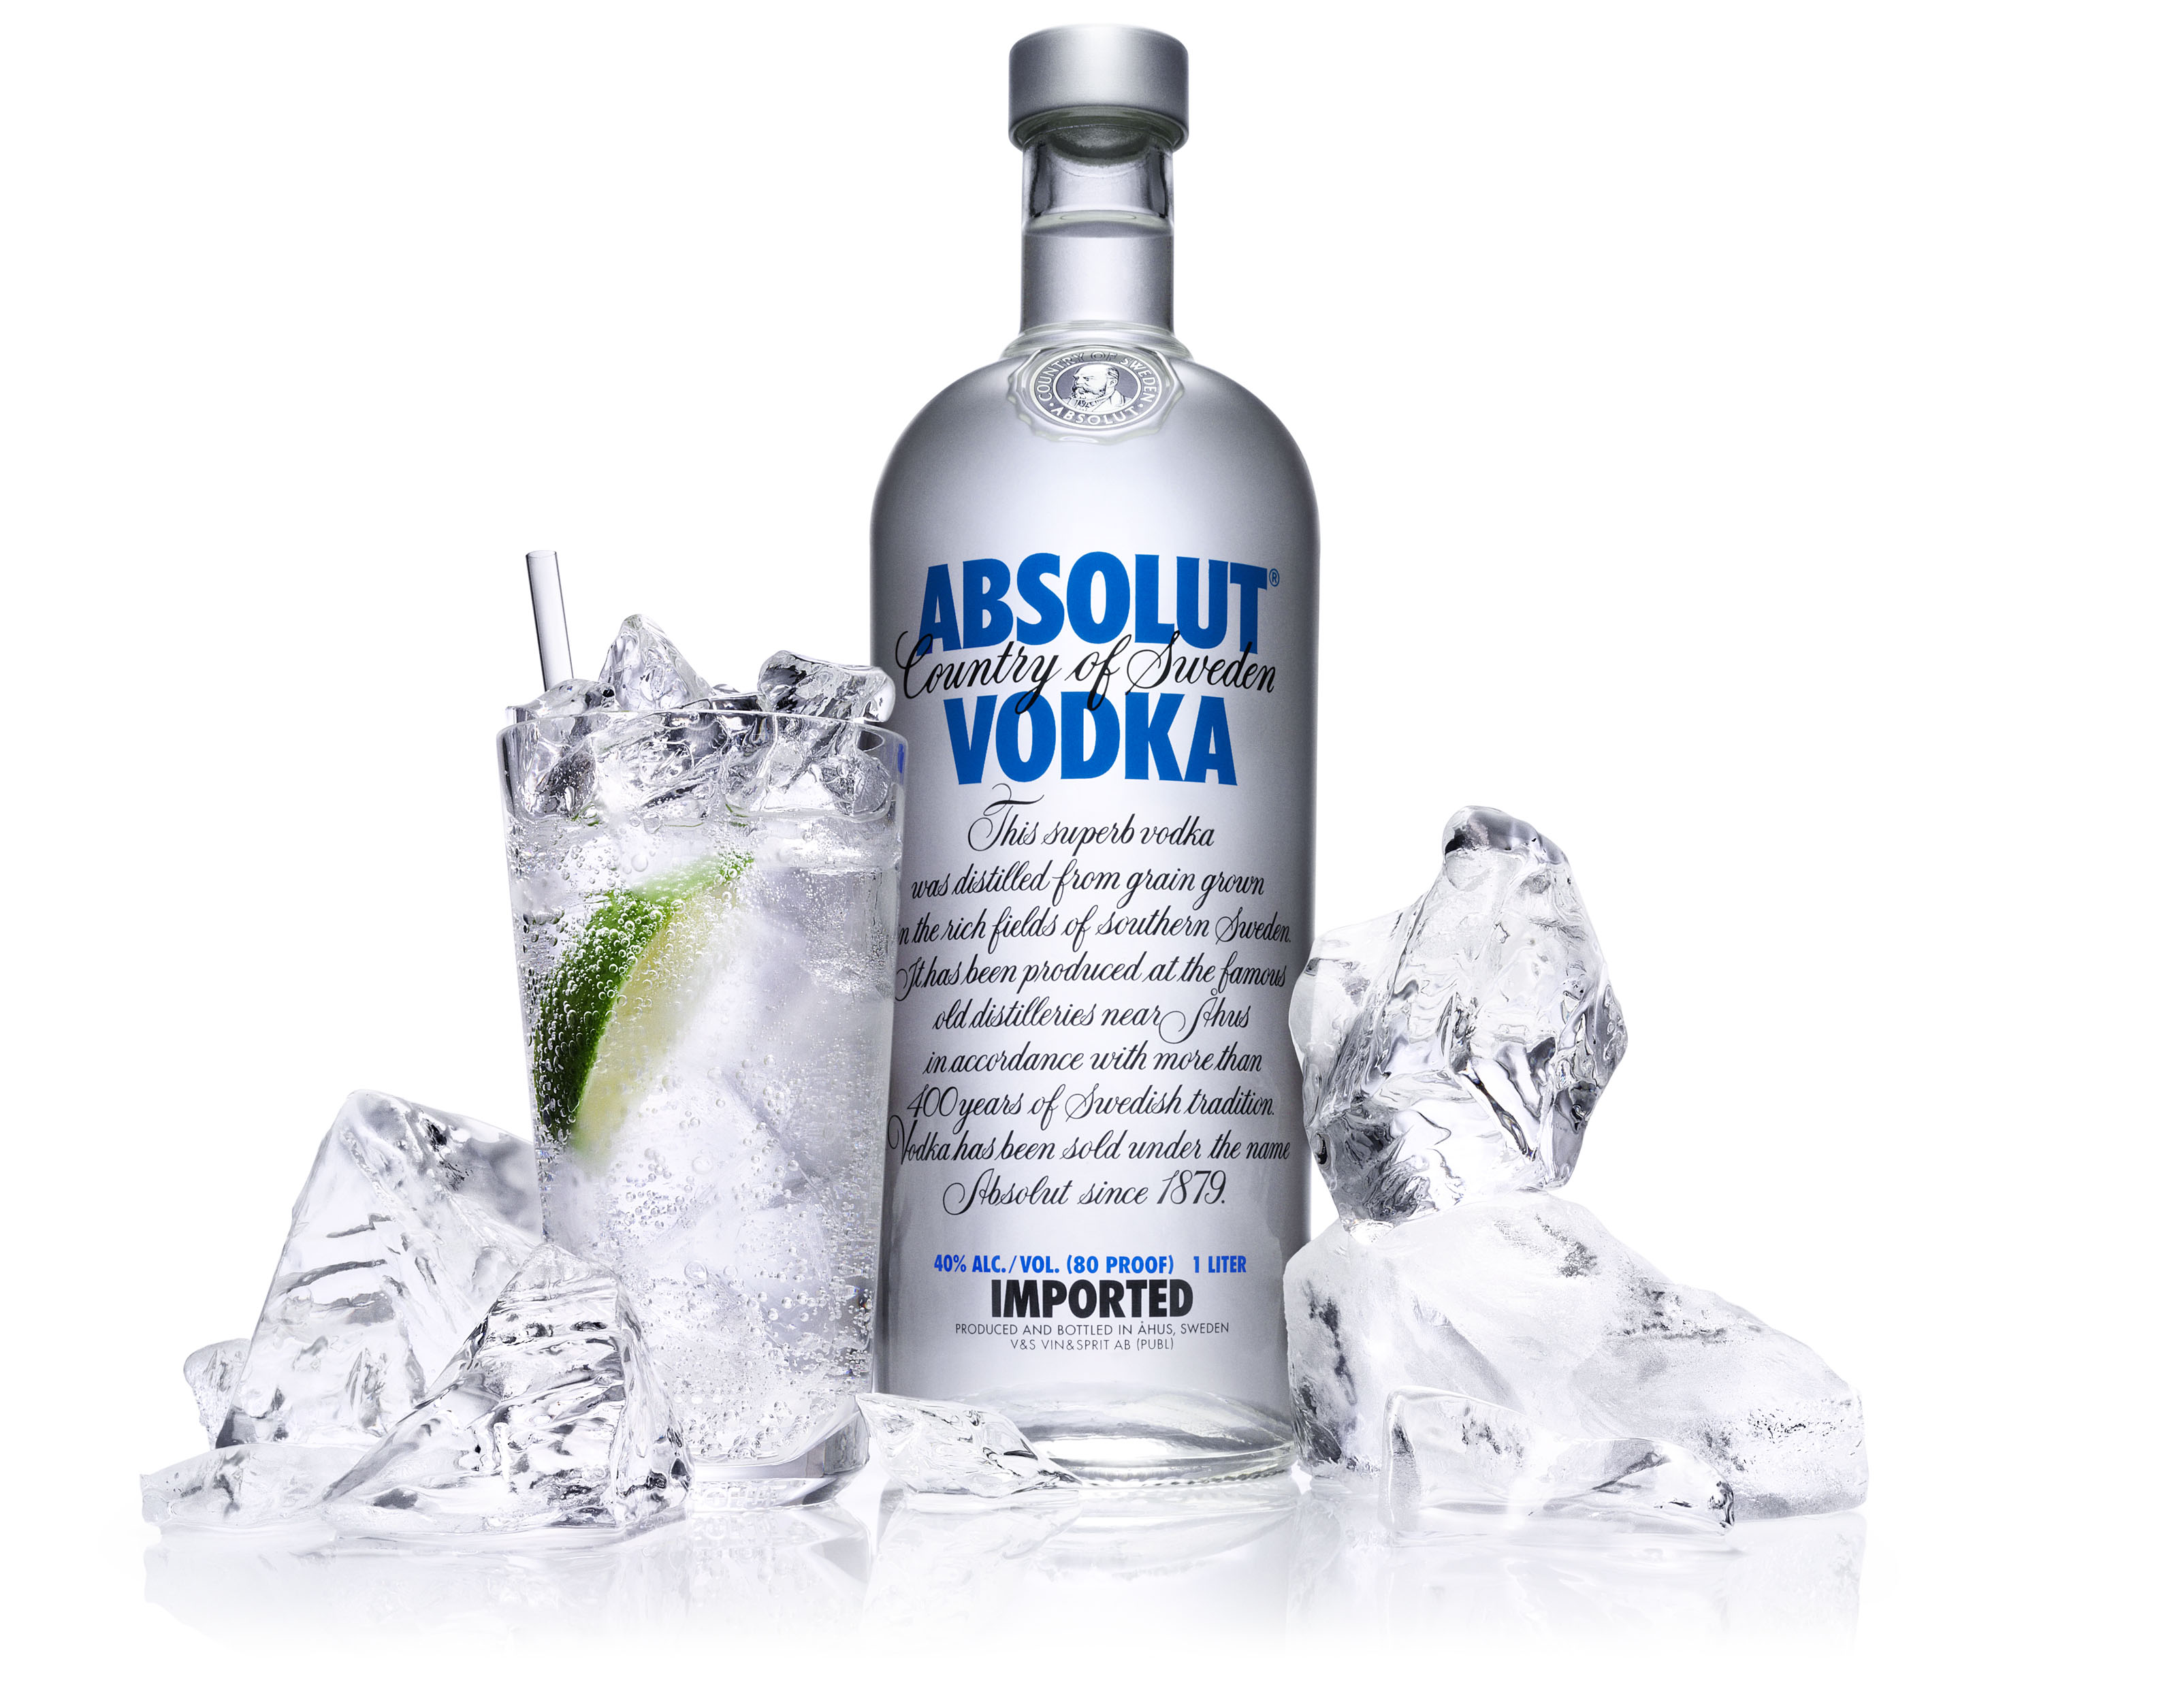 jensmortensen-absolut-vodka-be9c5ff8